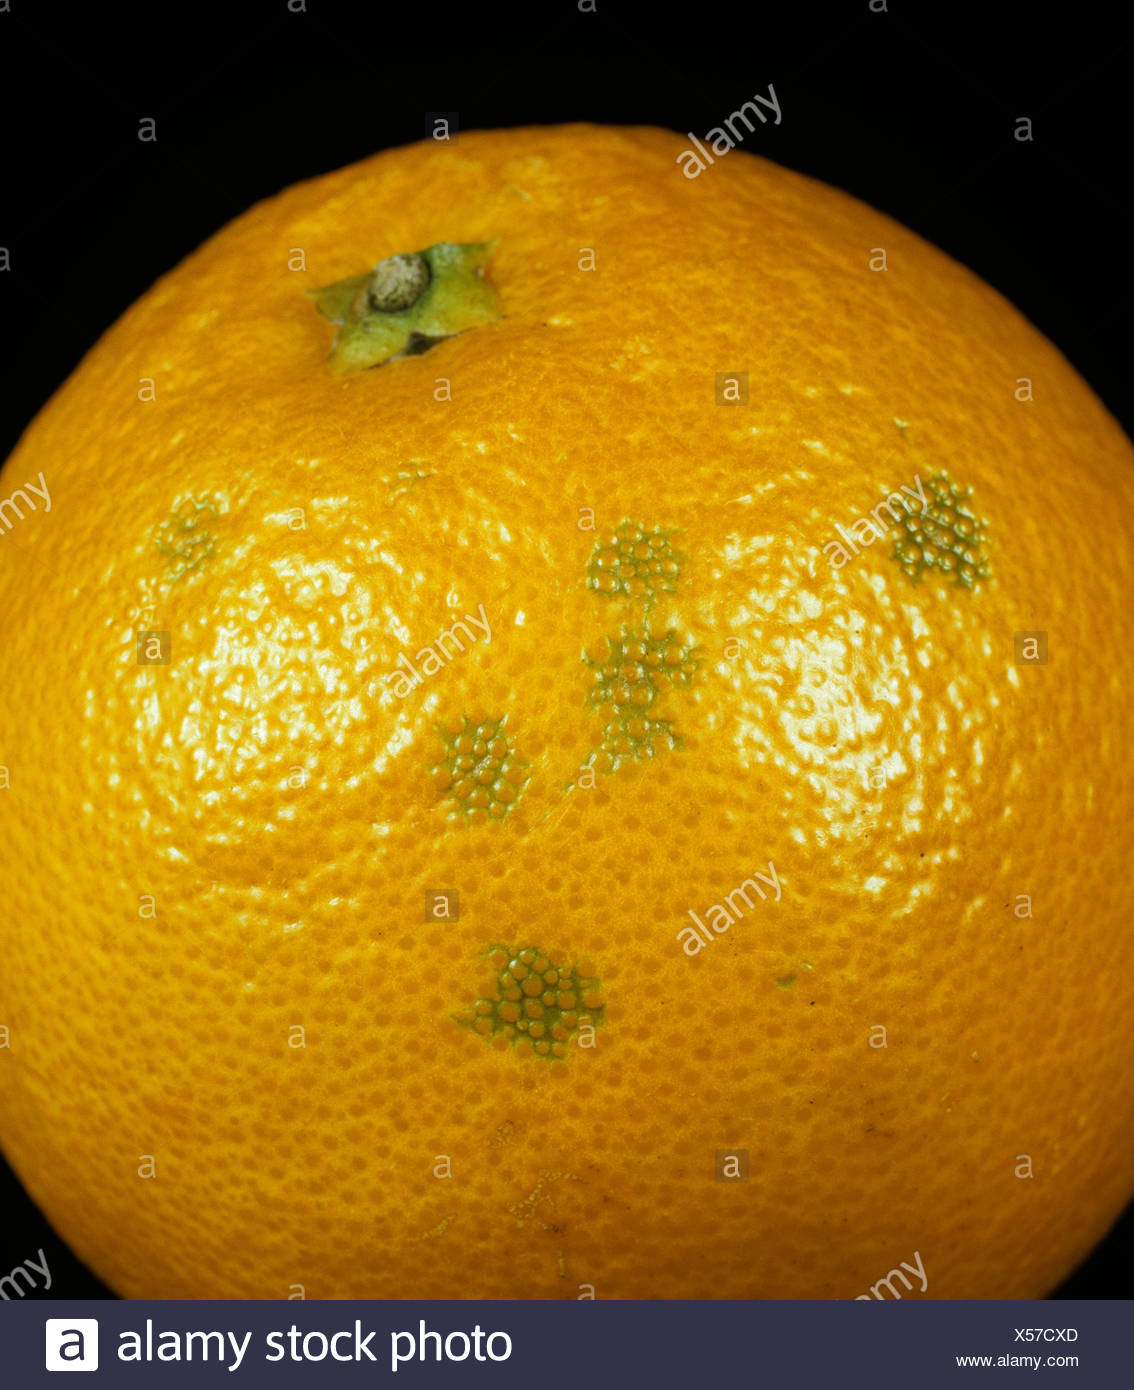 A rind disorder causing a blemish on orange peel - oleocellosis - Stock Image